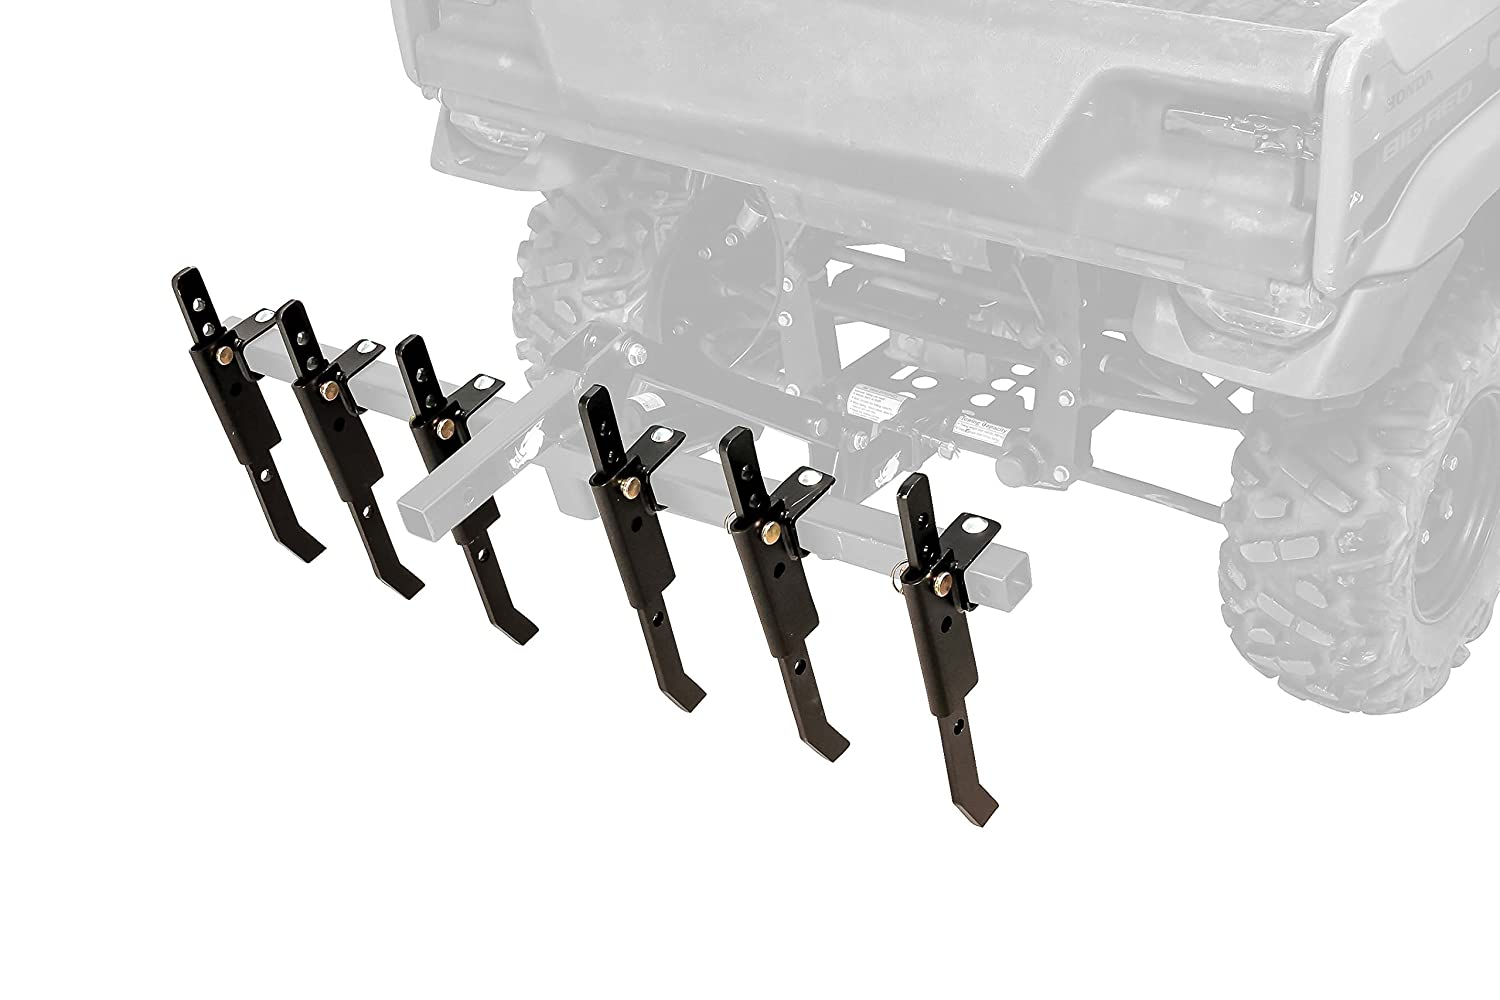 Black Boar ATV/UTV Plow Implement, Breaks Up Hard Ground w/6 Independently Adjustable Chisels, Use to Cultivate, Establish Food Plot, Maintain Land (66003)